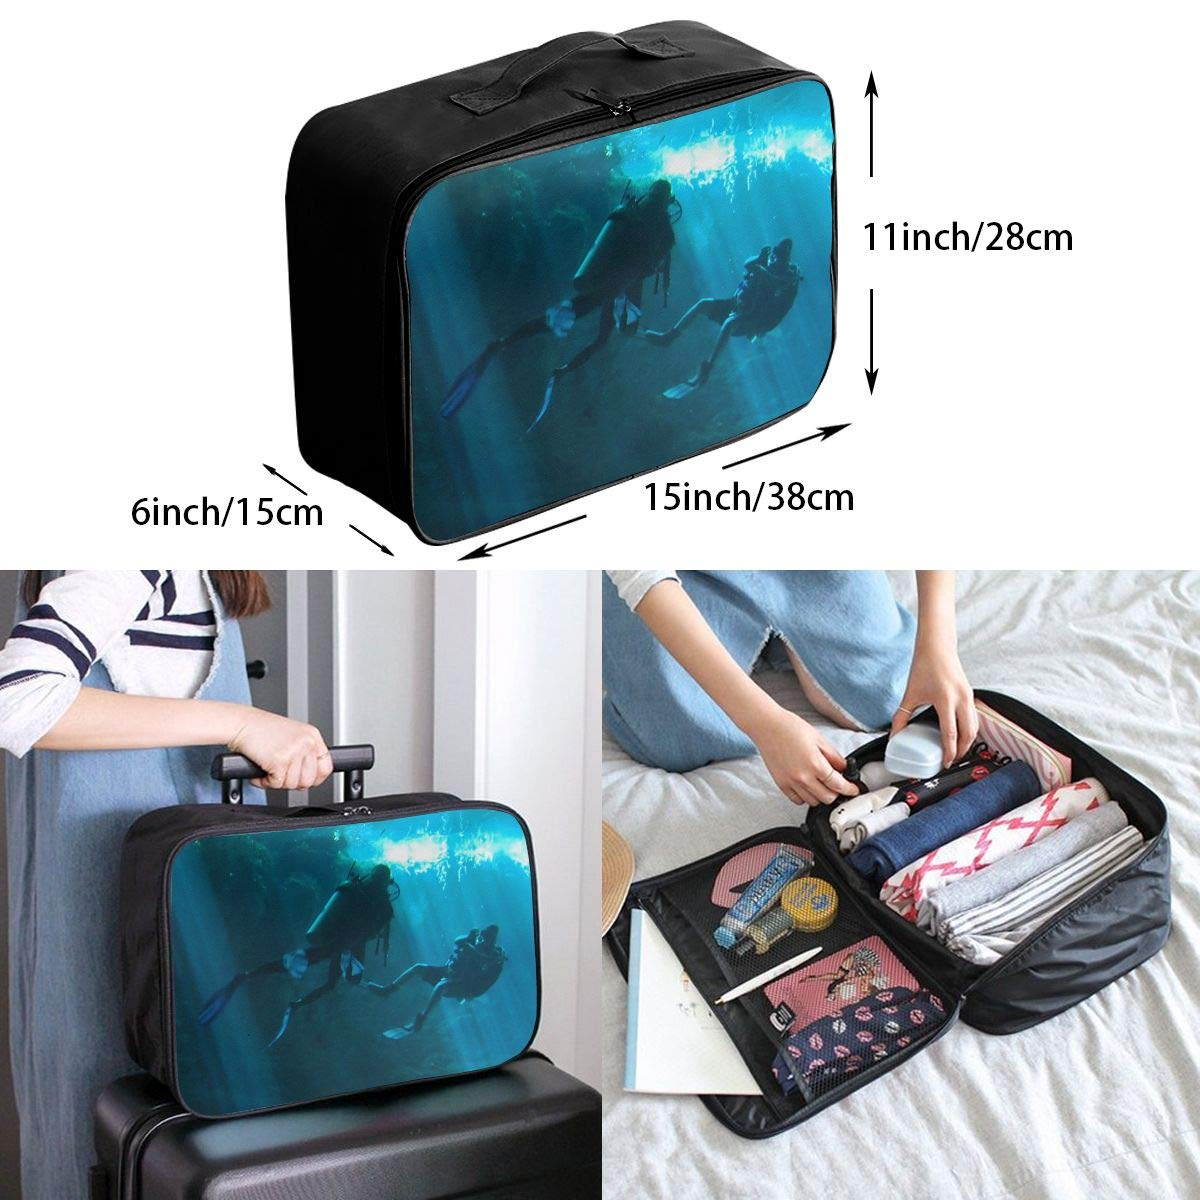 8 Travel Luggage Duffle Bag Lightweight Portable Handbag Skate Large Capacity Waterproof Foldable Storage Tote